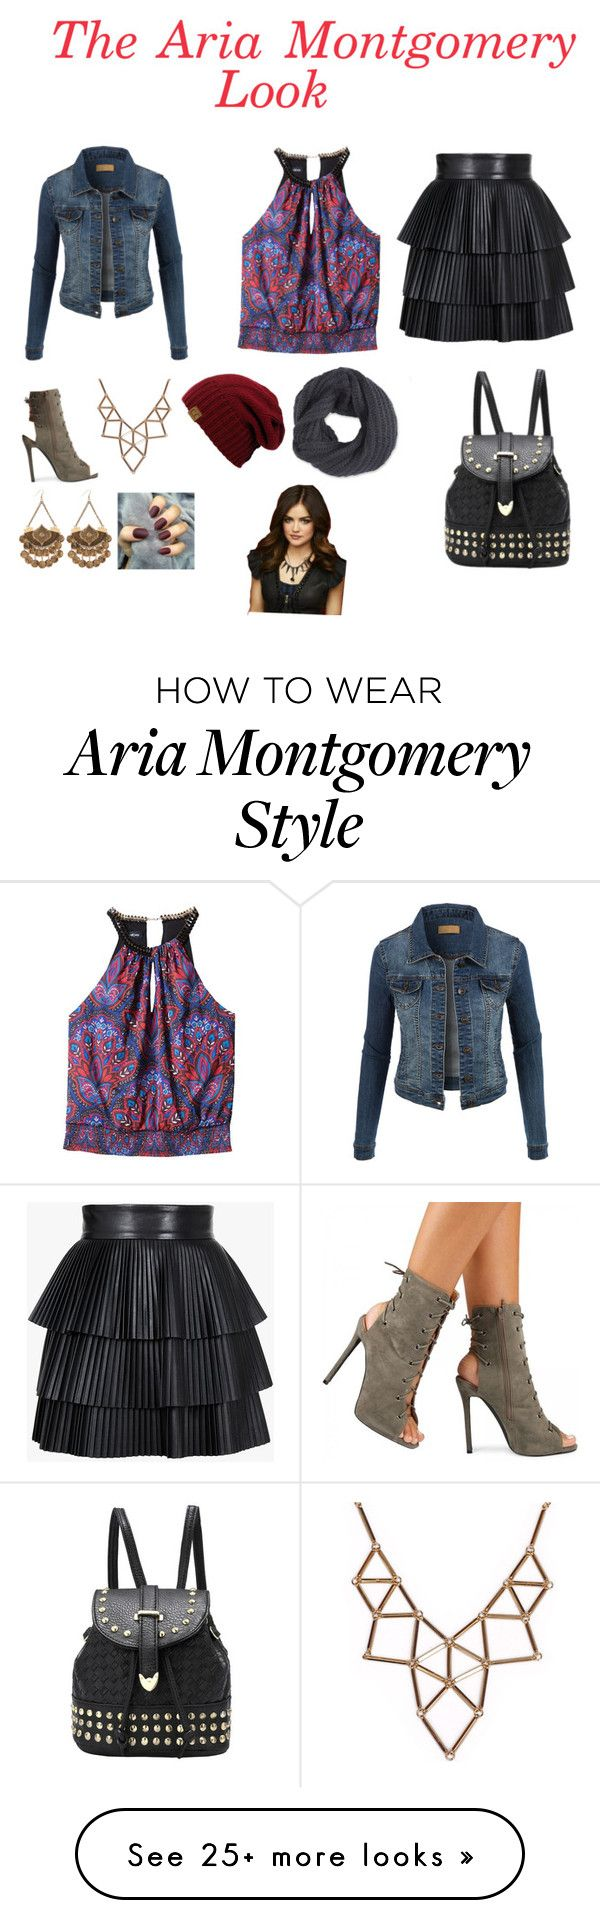 """The Aria Montgomery Look"" by elisabethbstylin on Polyvore featuring Bebe, Balmain, LE3NO, Frenchi and Chicnova Fashion"